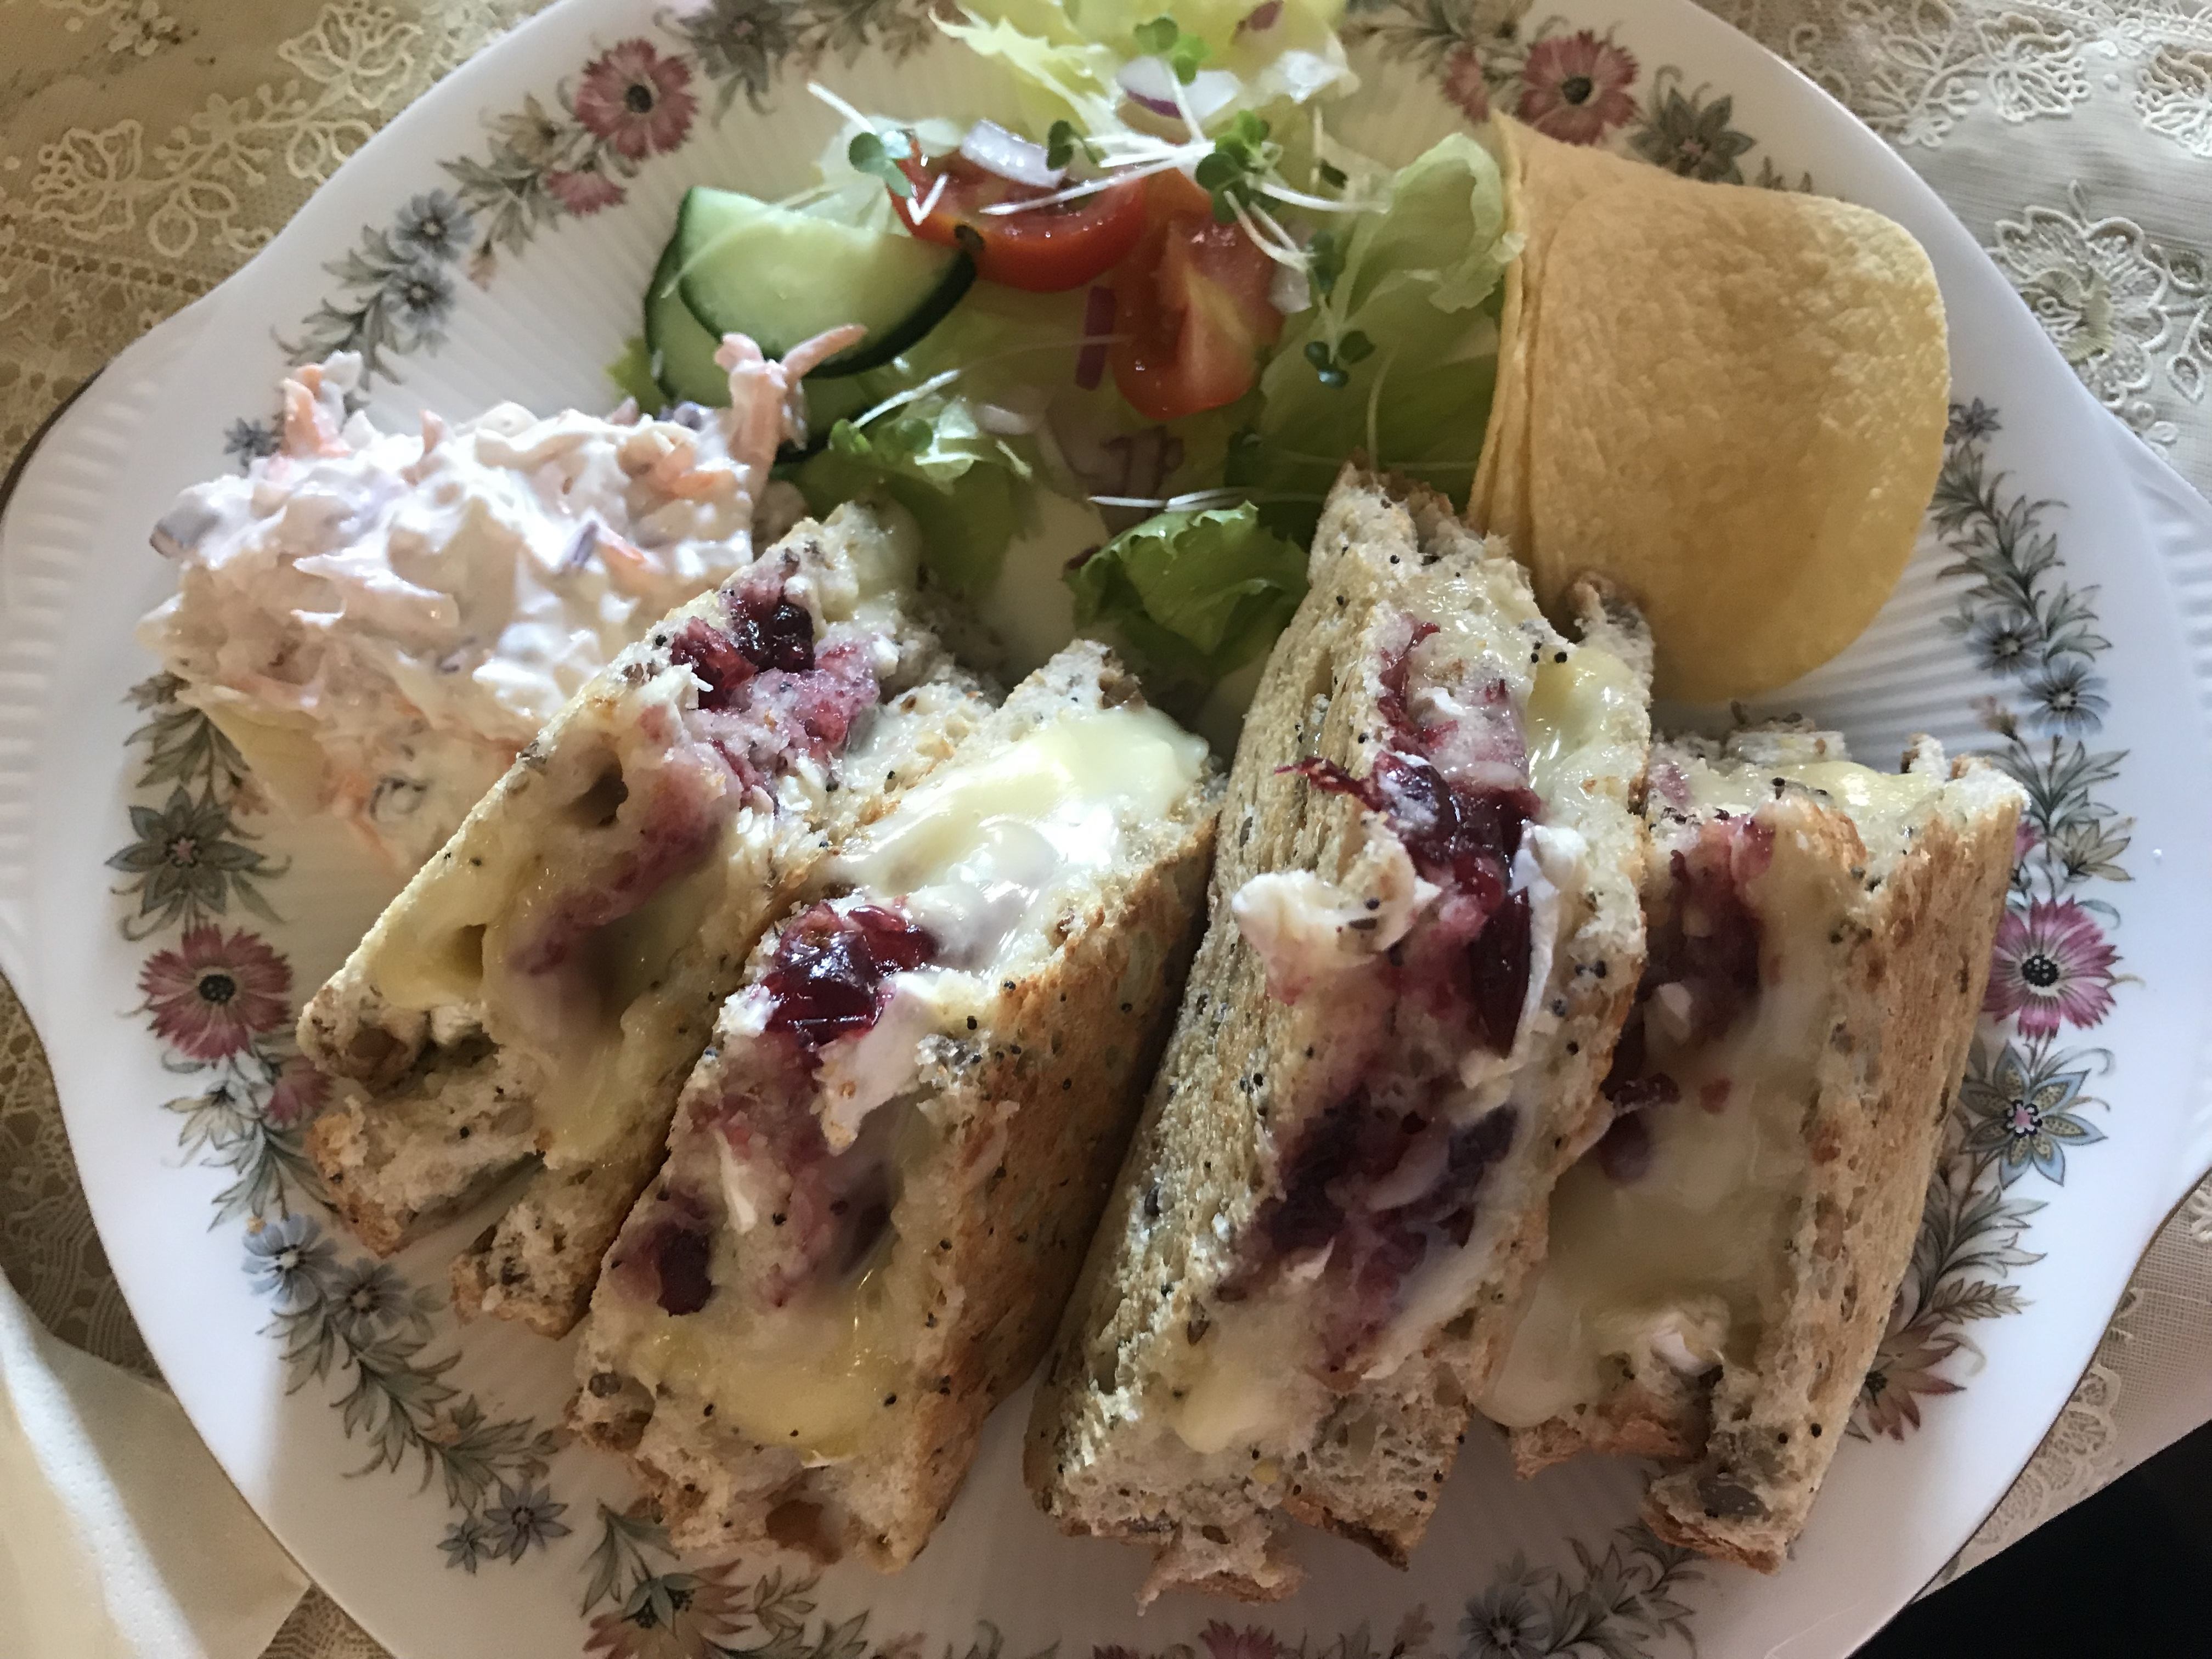 Miss B's Tearooms, Melton Mowbray, Leicestershire